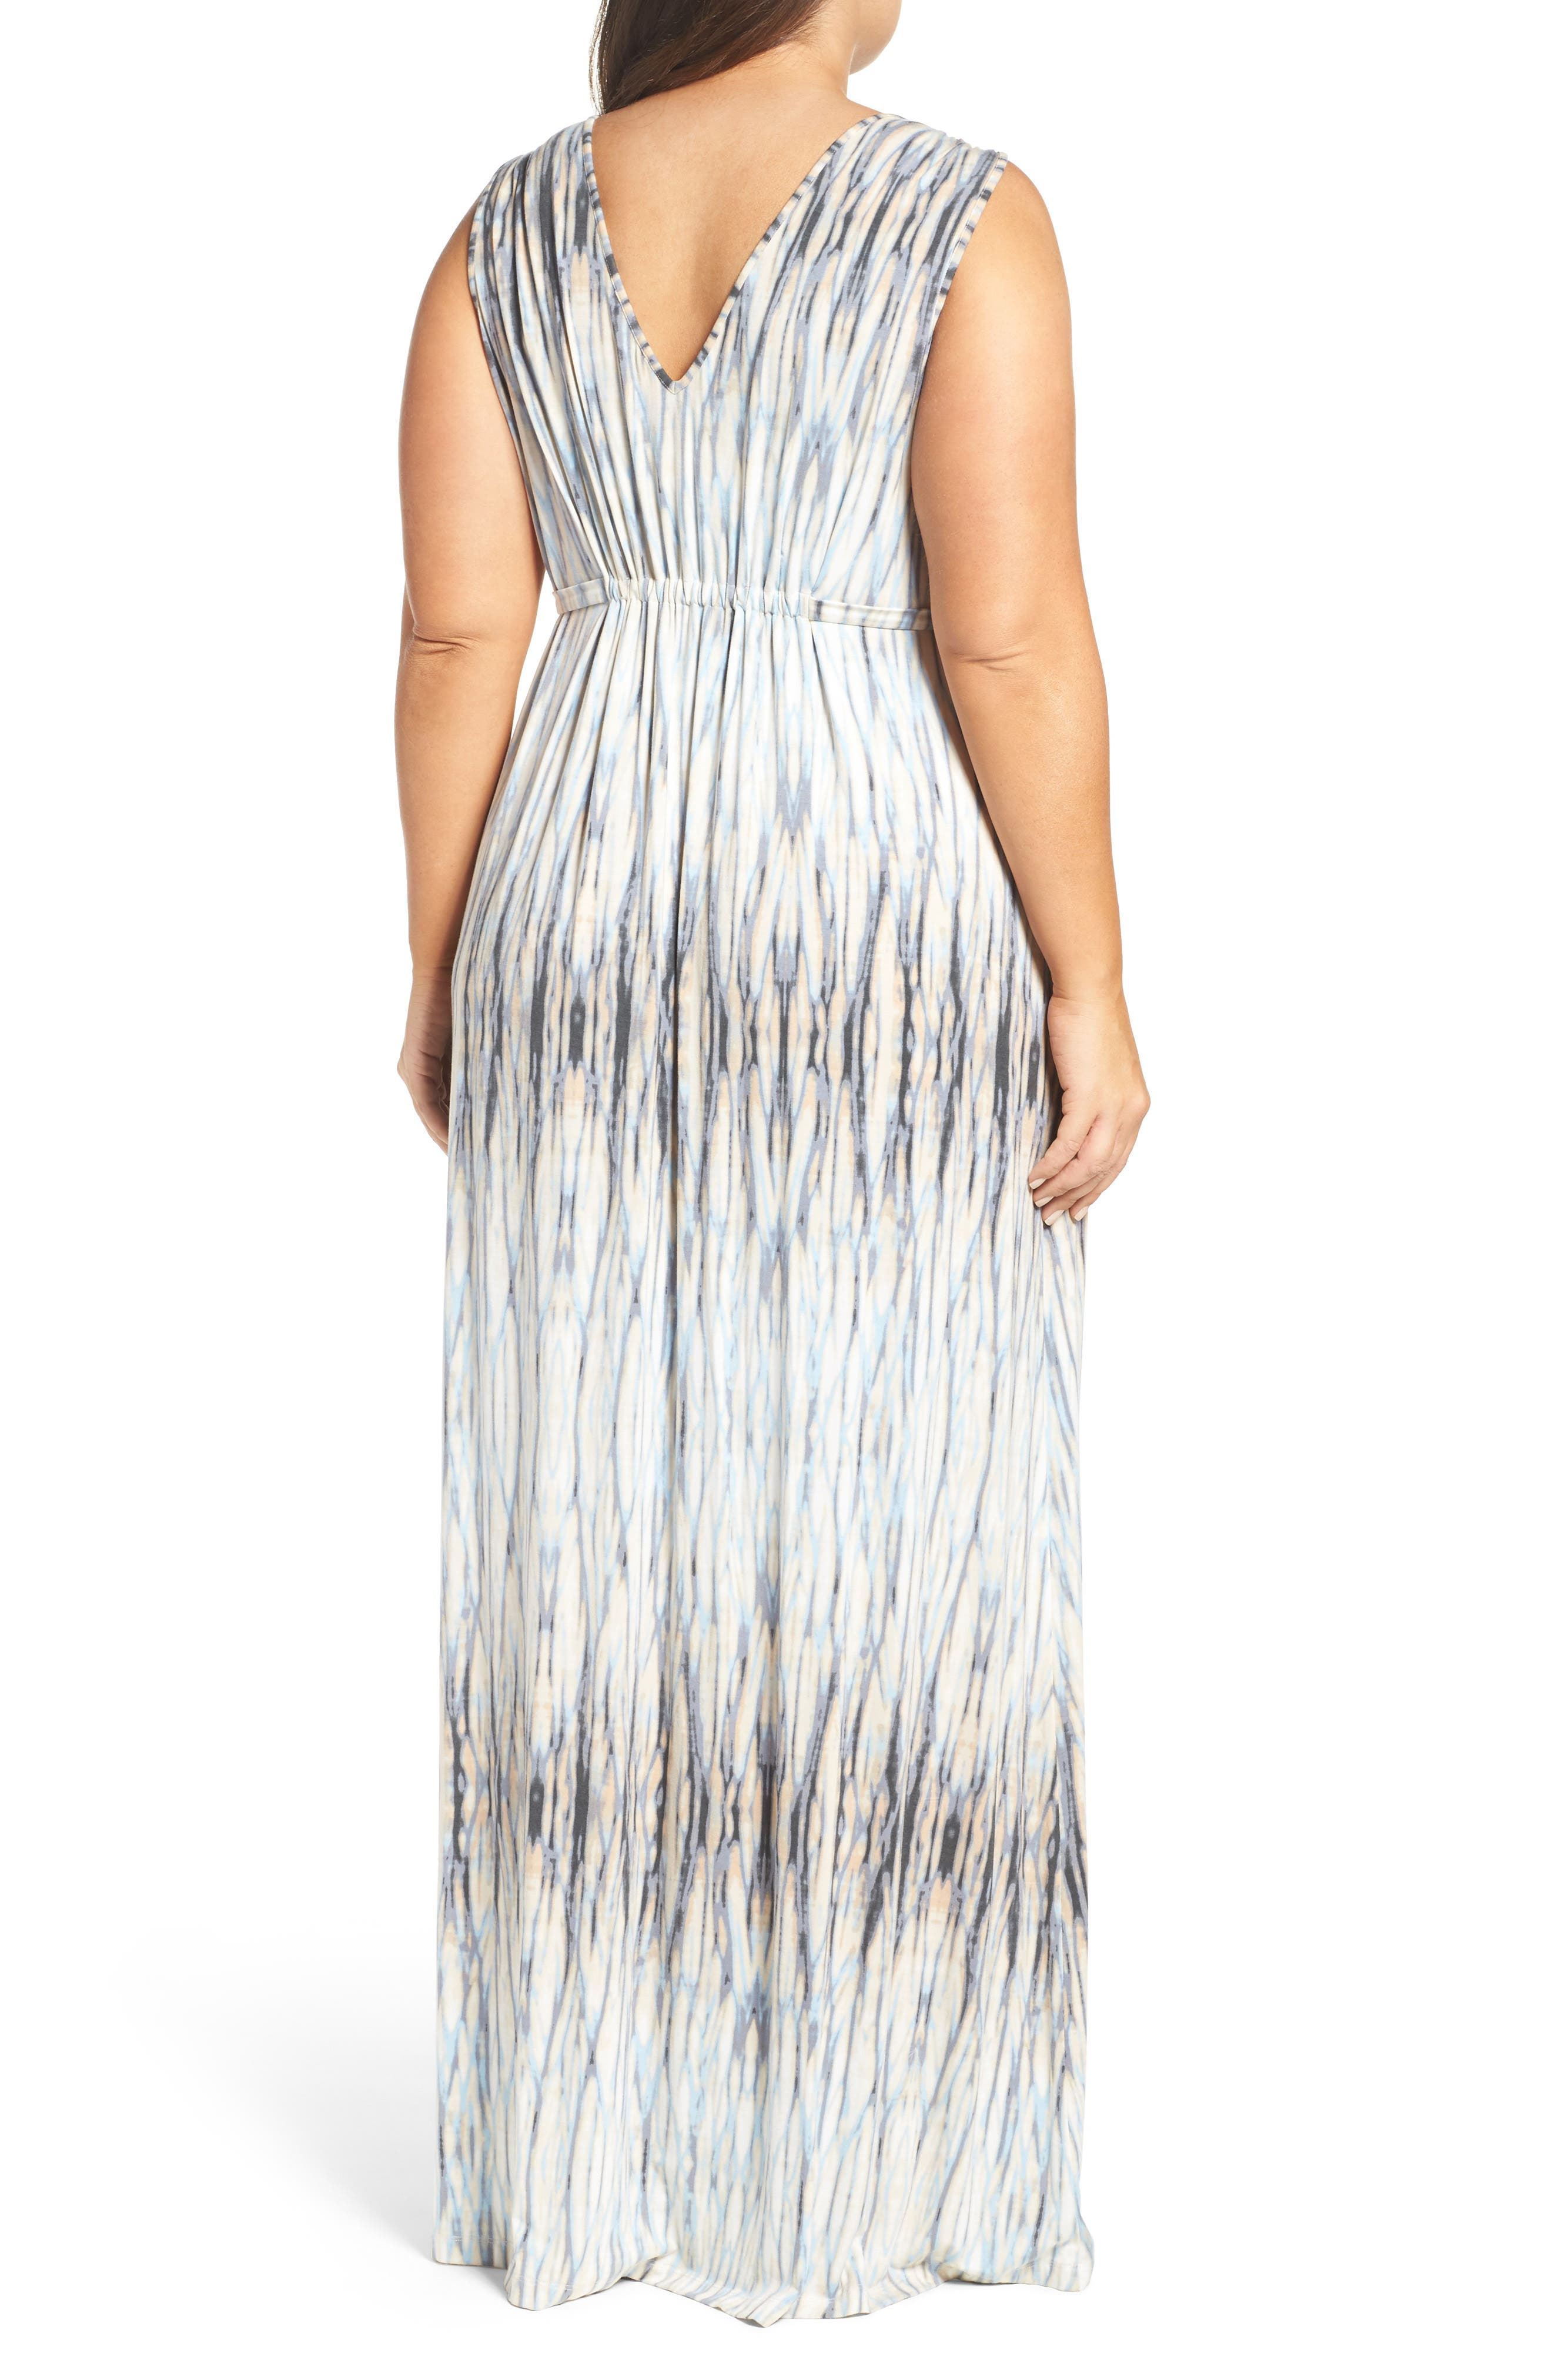 Grecia Sleeveless Jersey Maxi Dress,                             Alternate thumbnail 3, color,                             Water Reflections